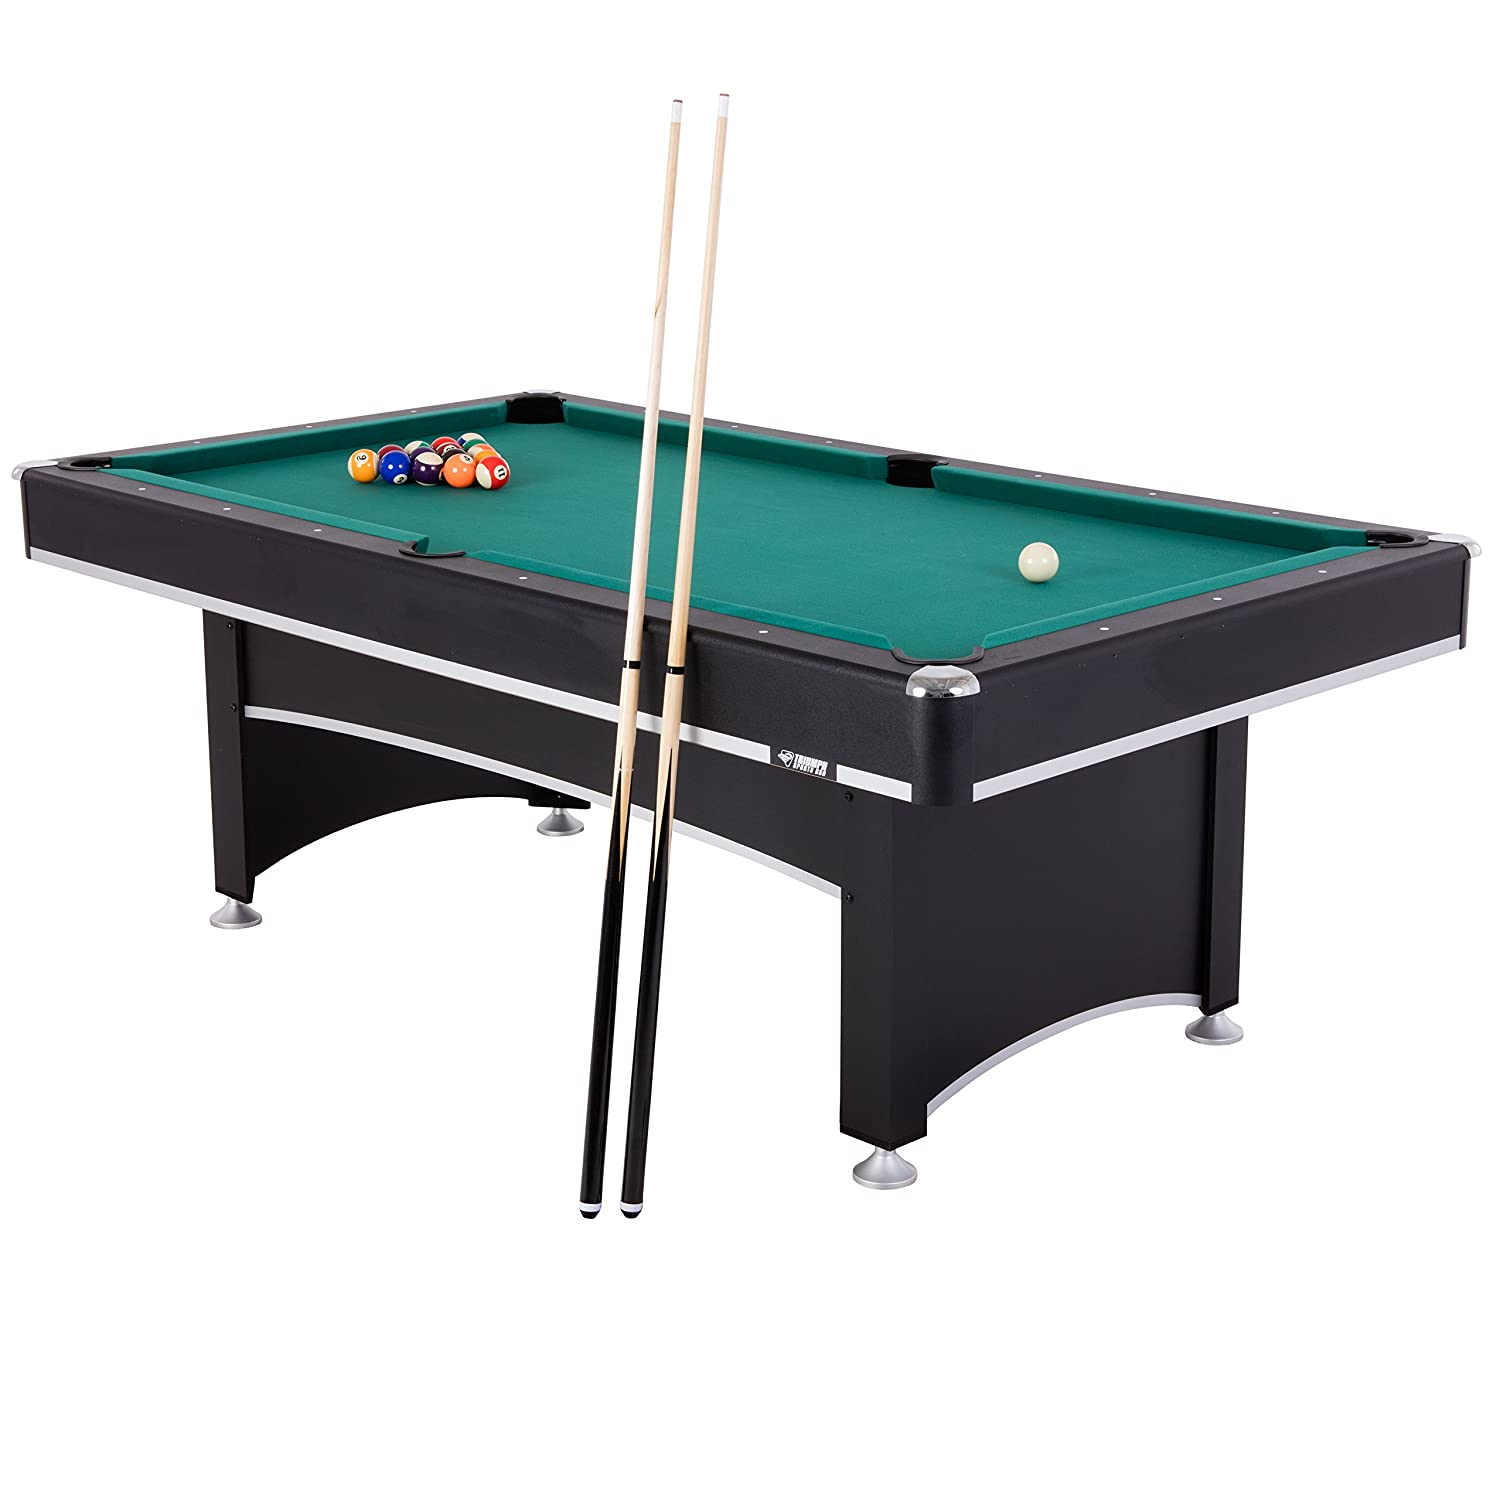 Amazon.com : Triumph Sports Phoenix 7' Billiard Table with Table ...